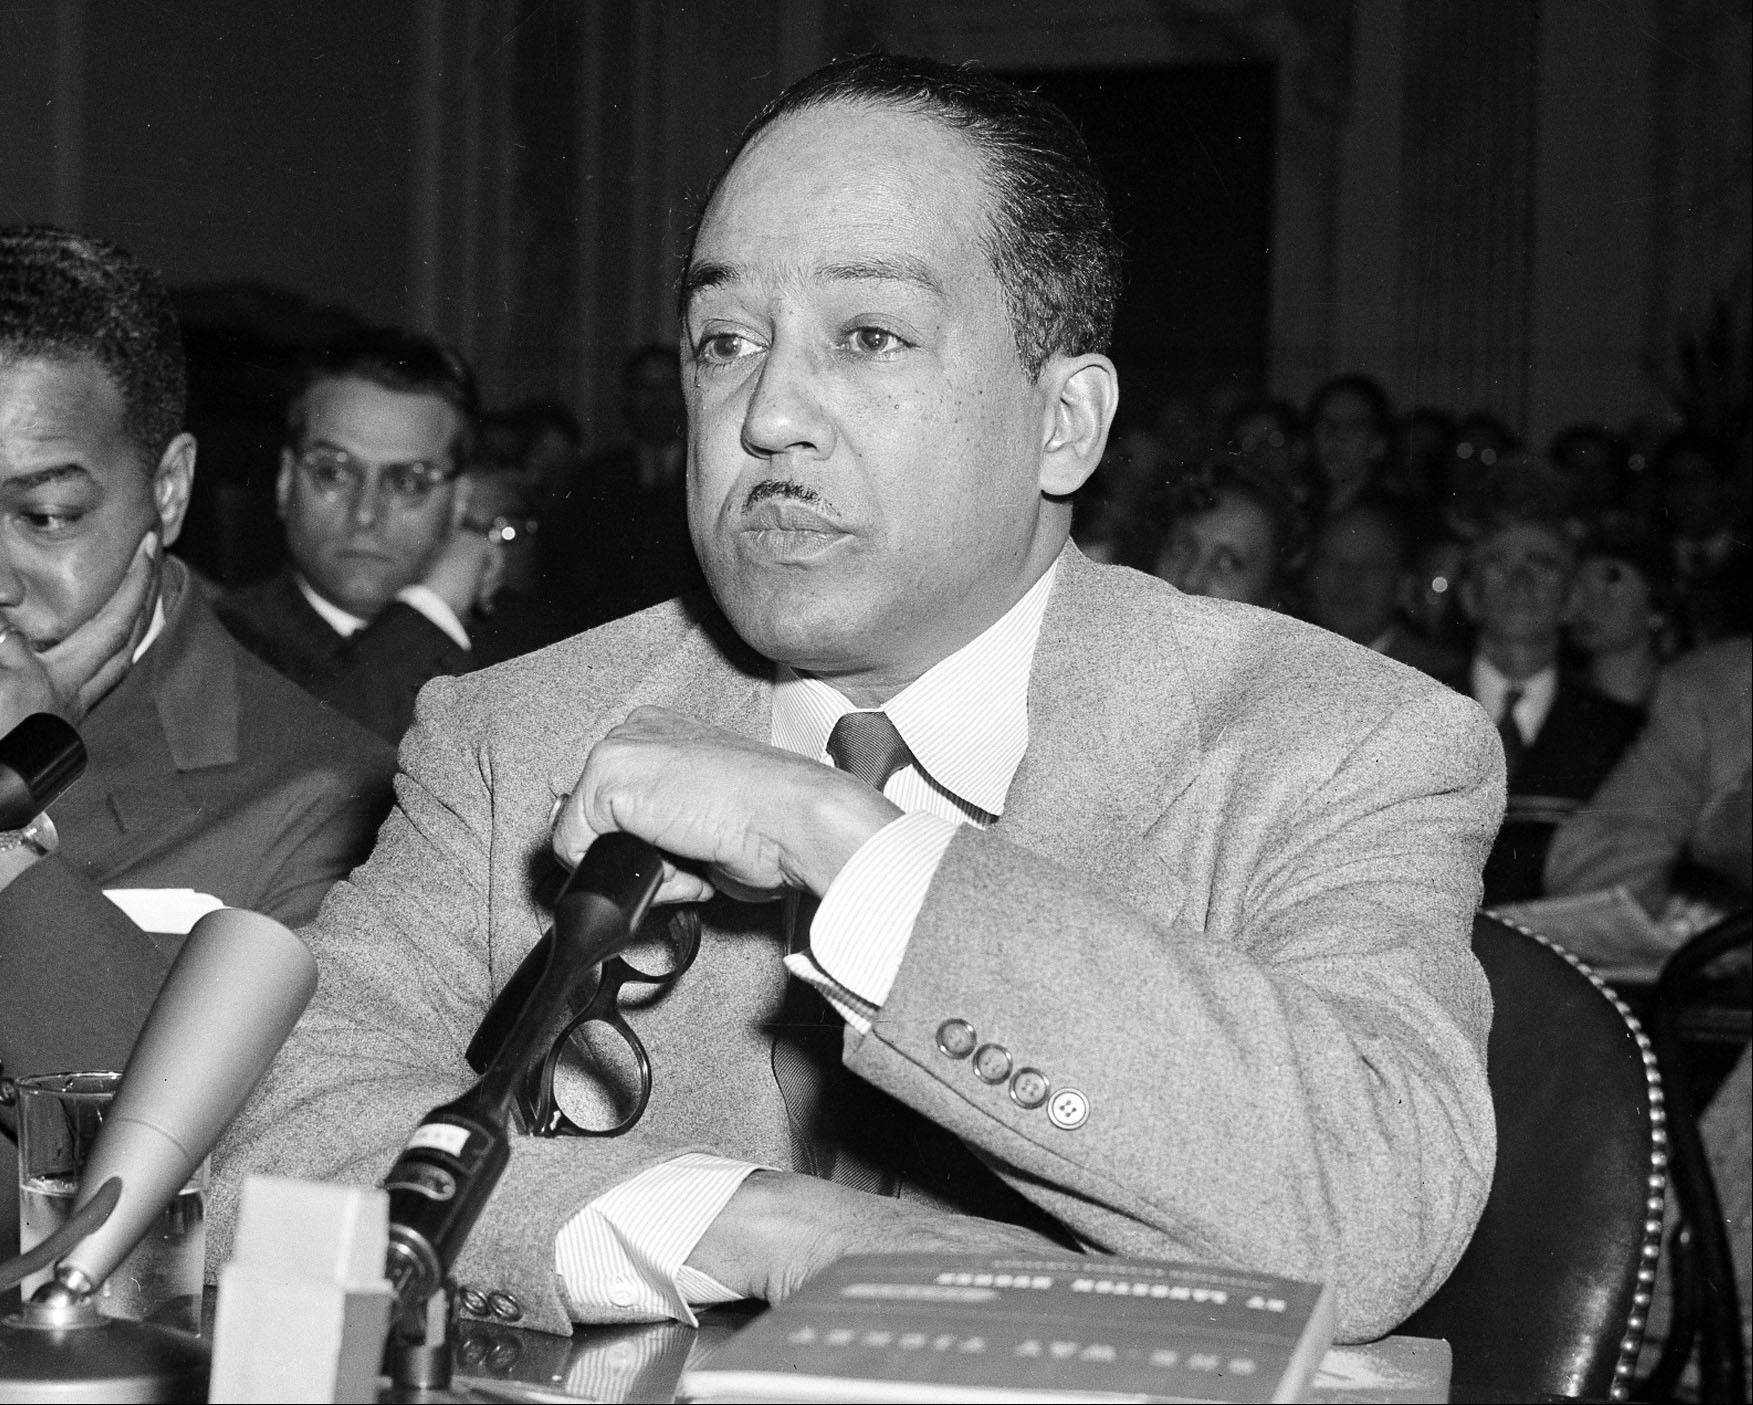 Poet and author Langston Hughes, along with Adrienne Rich, Allen Ginsberg, and Wallace Stevens are among the poets whose work recently became available in electronic format.